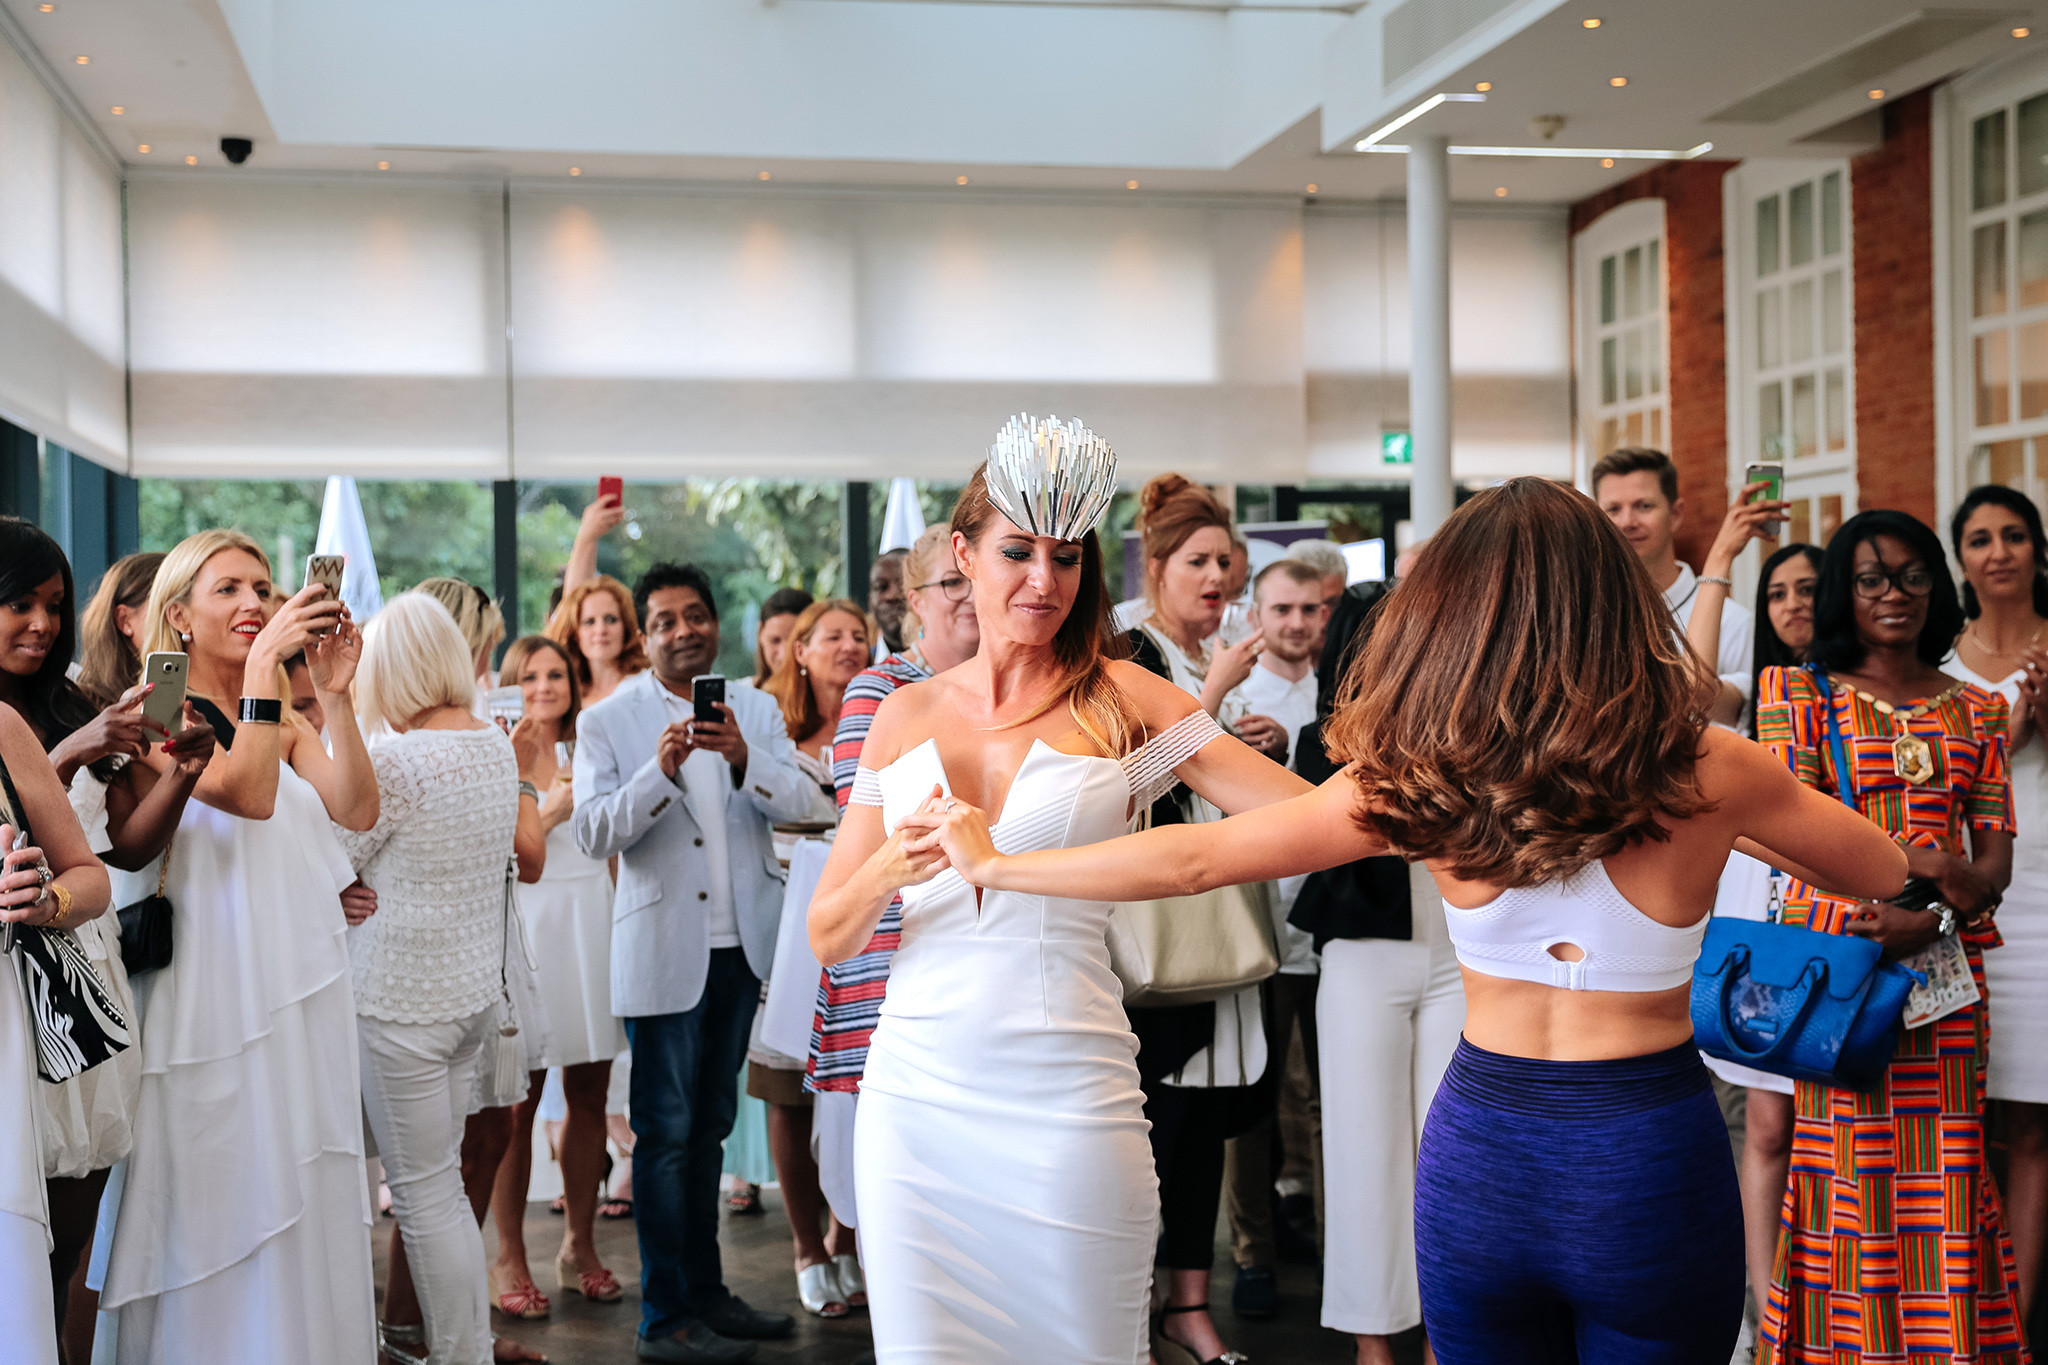 Eyes of Lady Wimbledon - Launch Party captured by Charlie Borgio